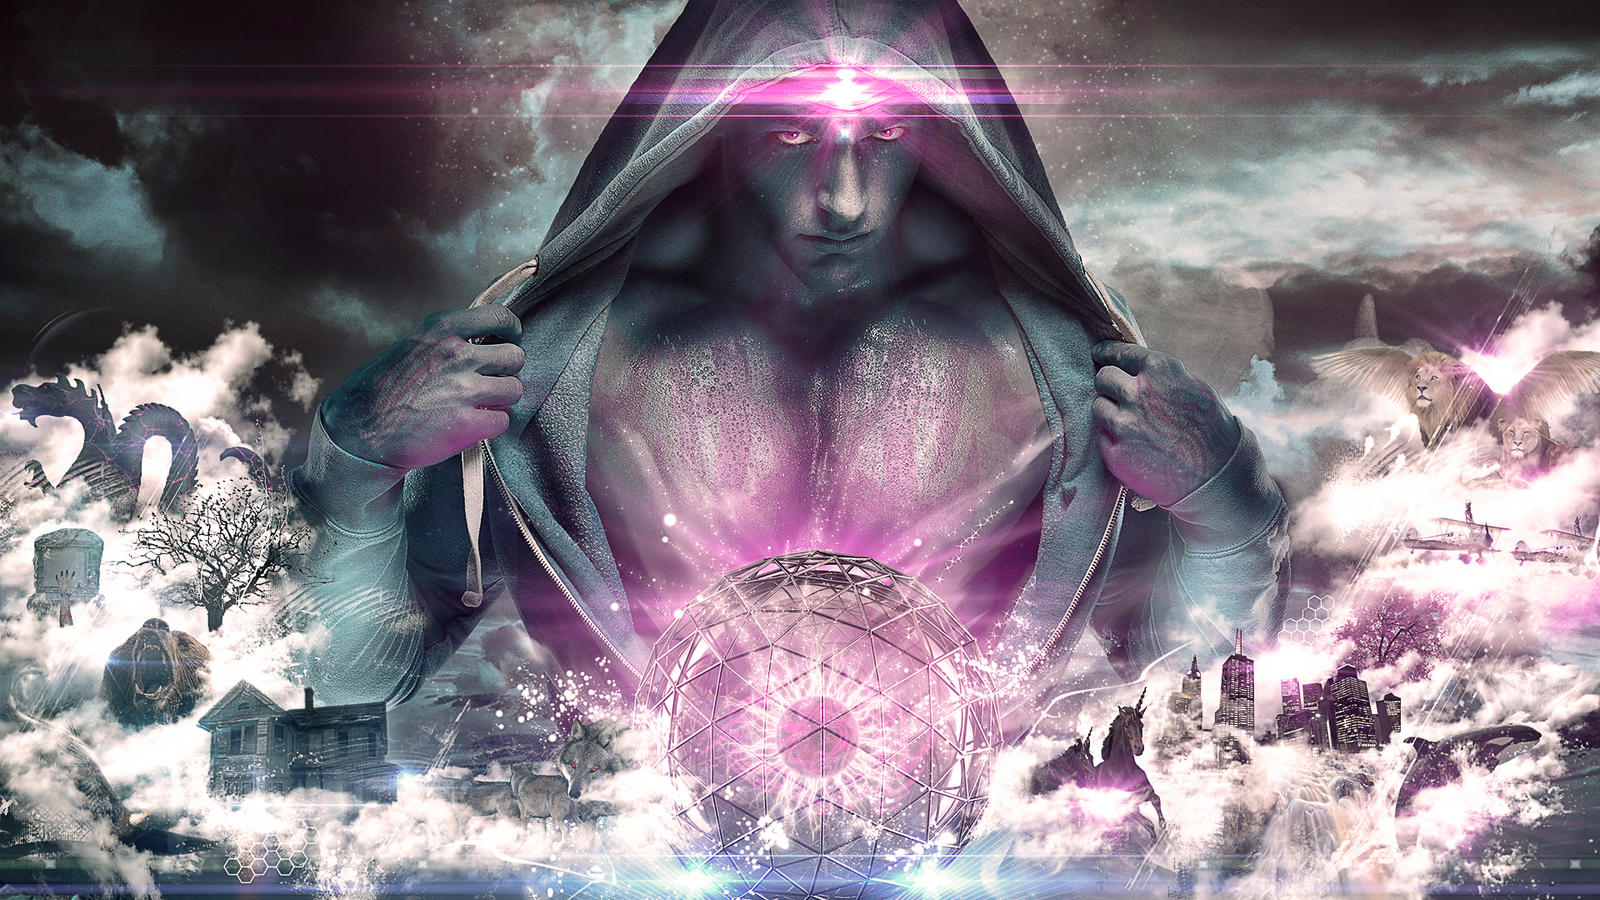 Morpheus - The god of dreams by ArtBeatDesigns on DeviantArt